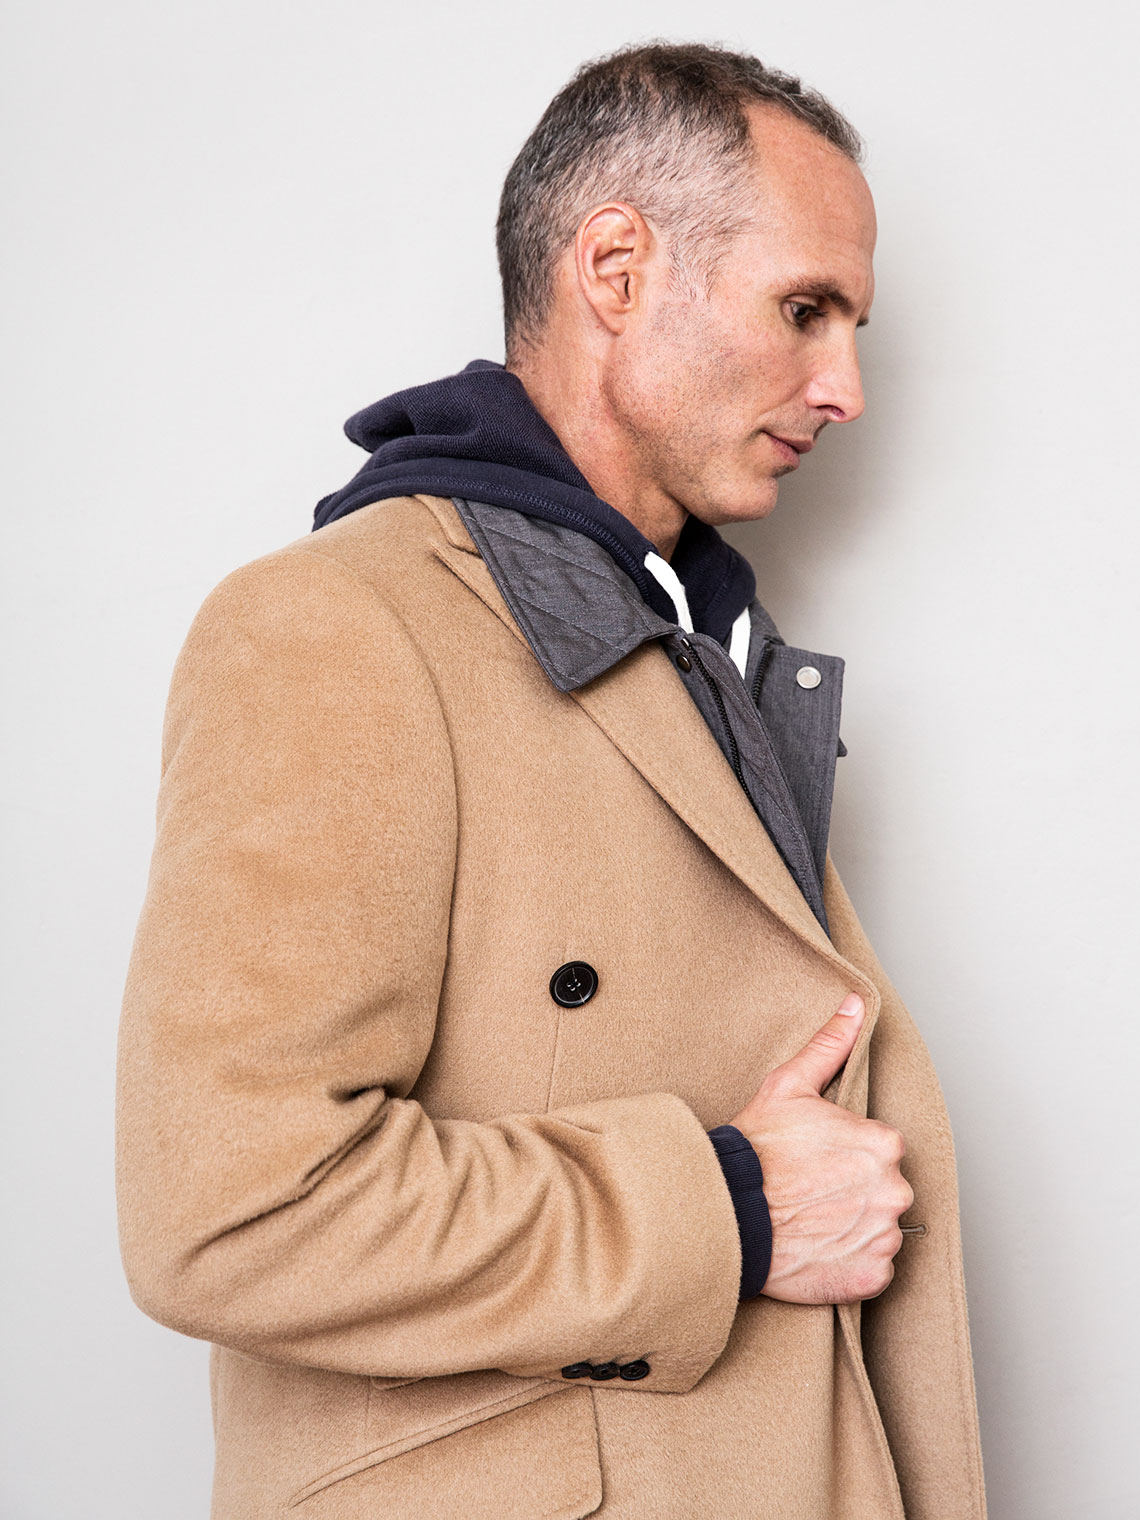 brian-sorg-tc-nyc-24-TCM_Lookbook_Gant_Shot14_032